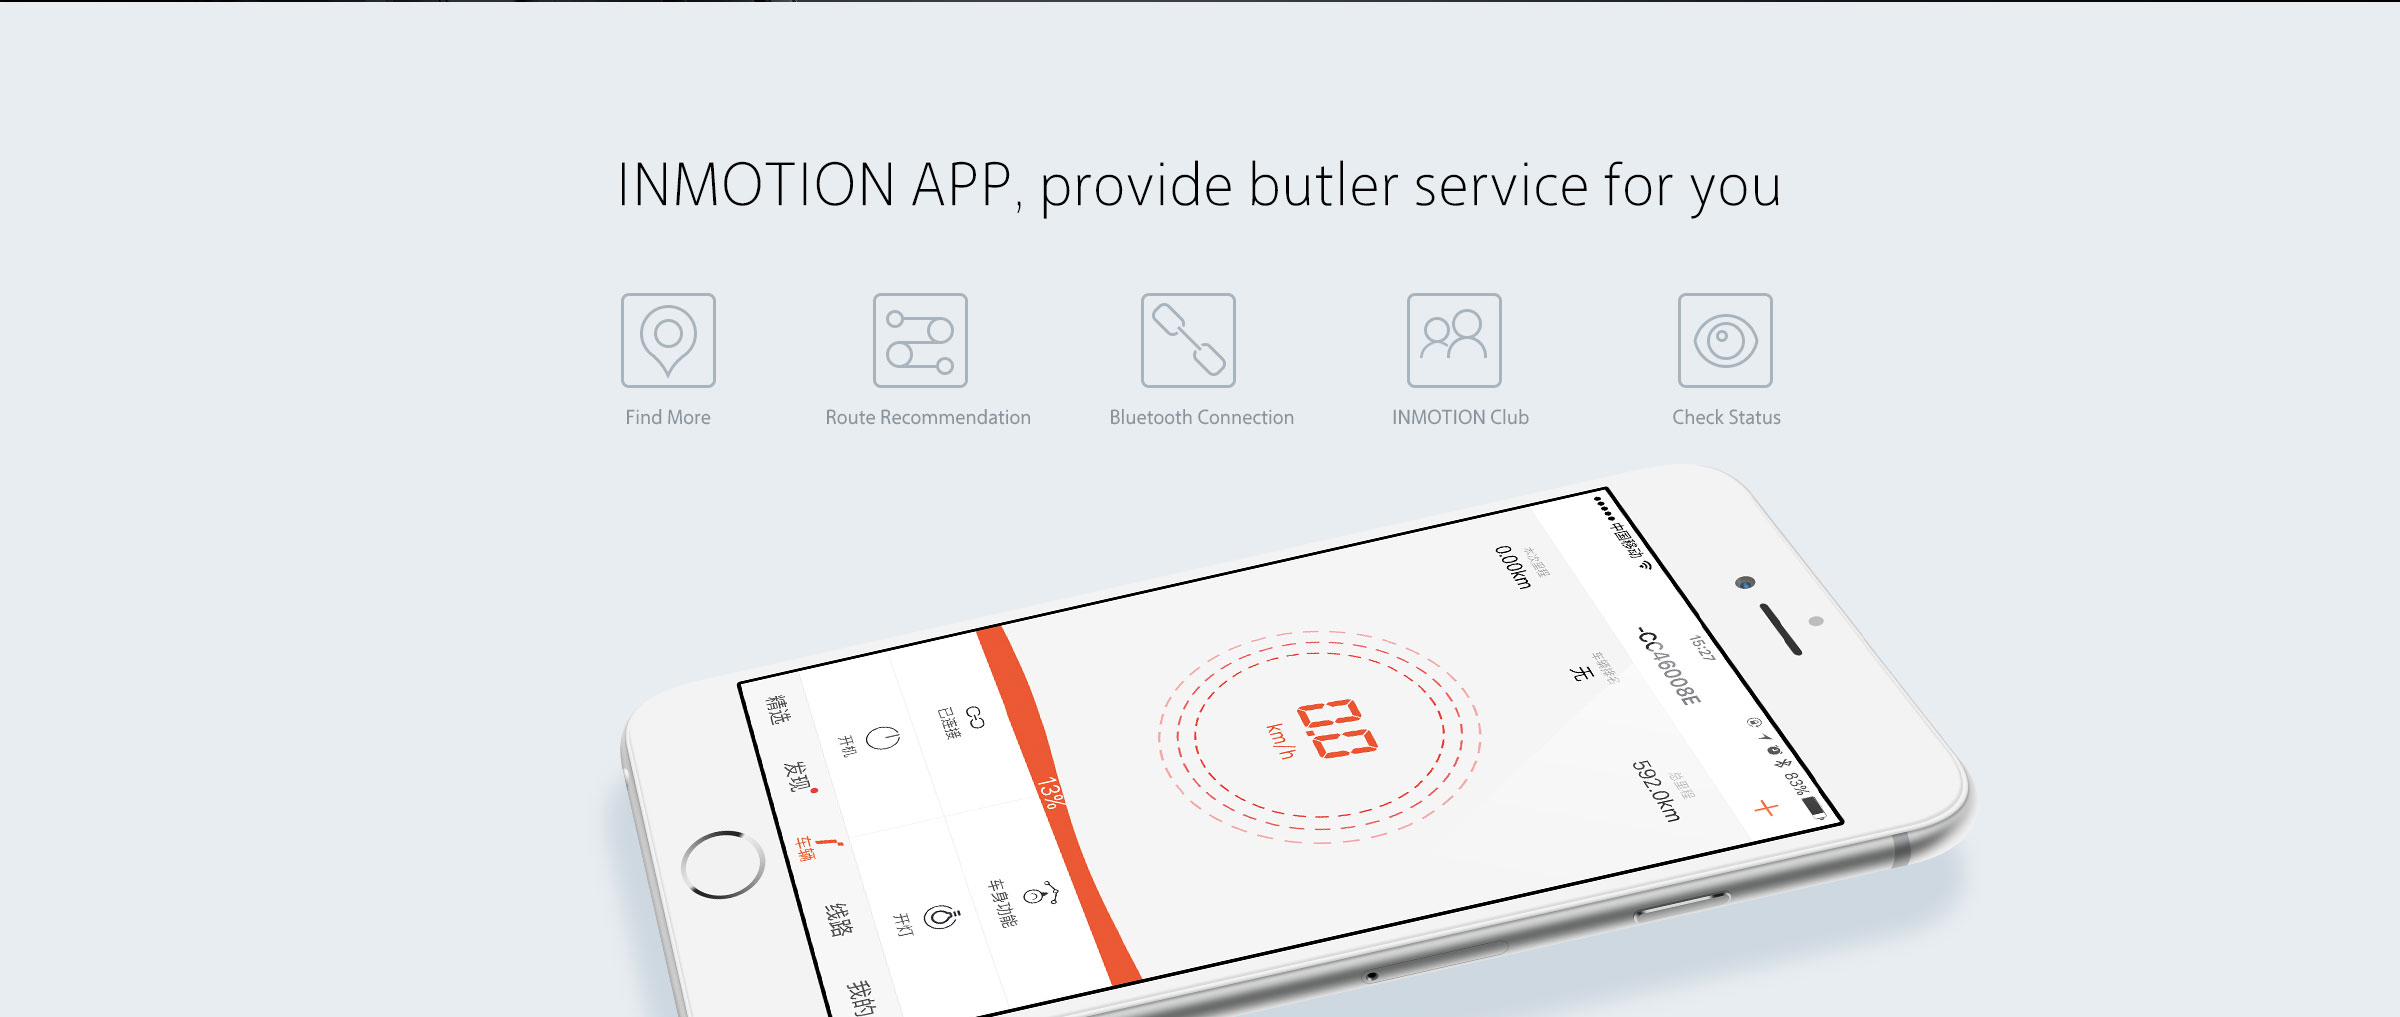 inmotion app,provide butler service for you